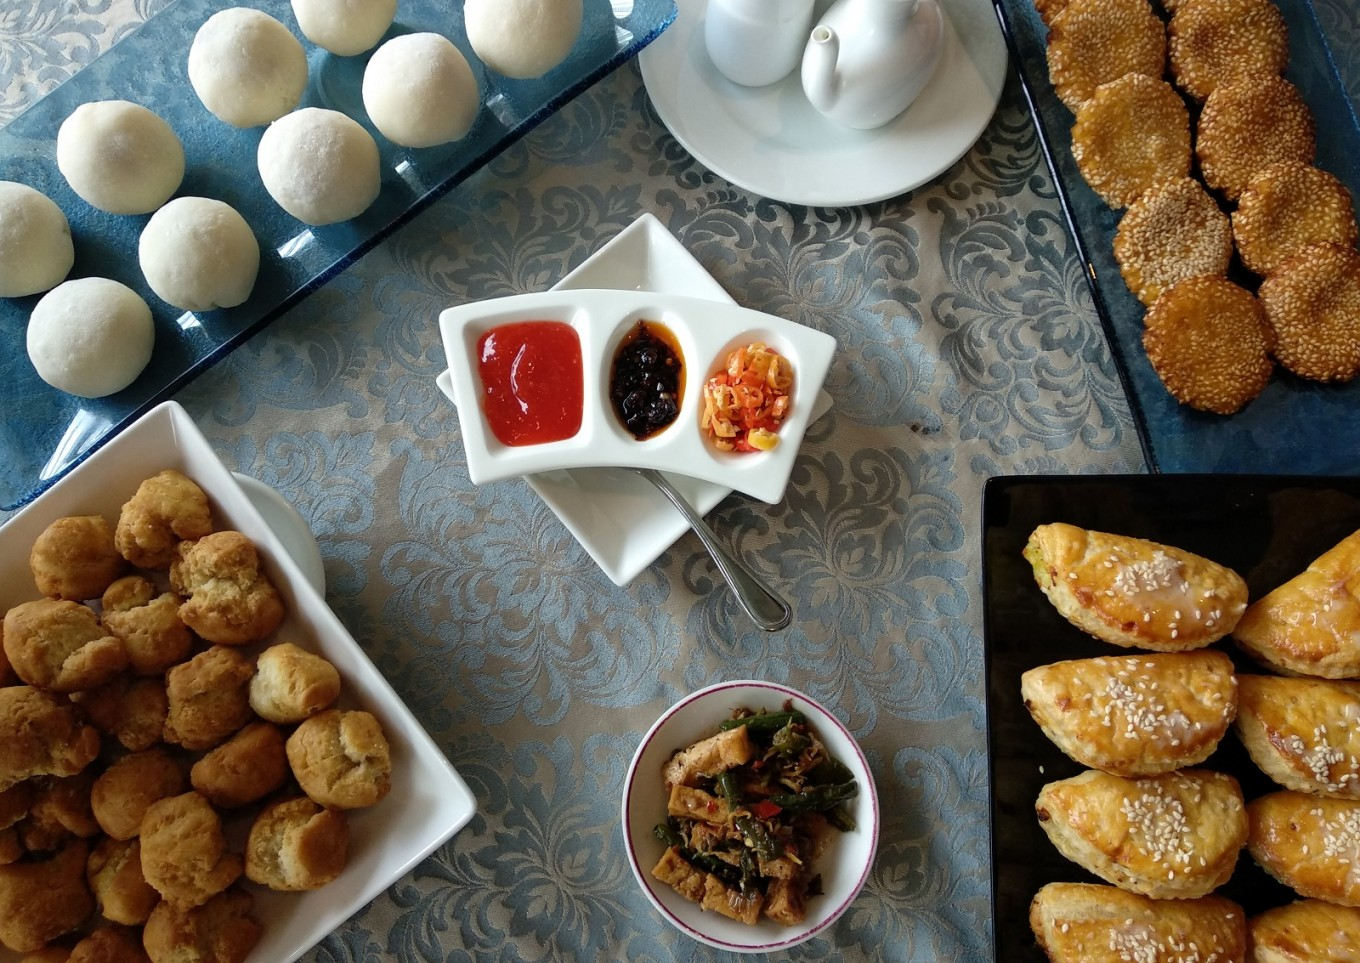 Tracing the path of dim sum with Gran Melia Jakarta